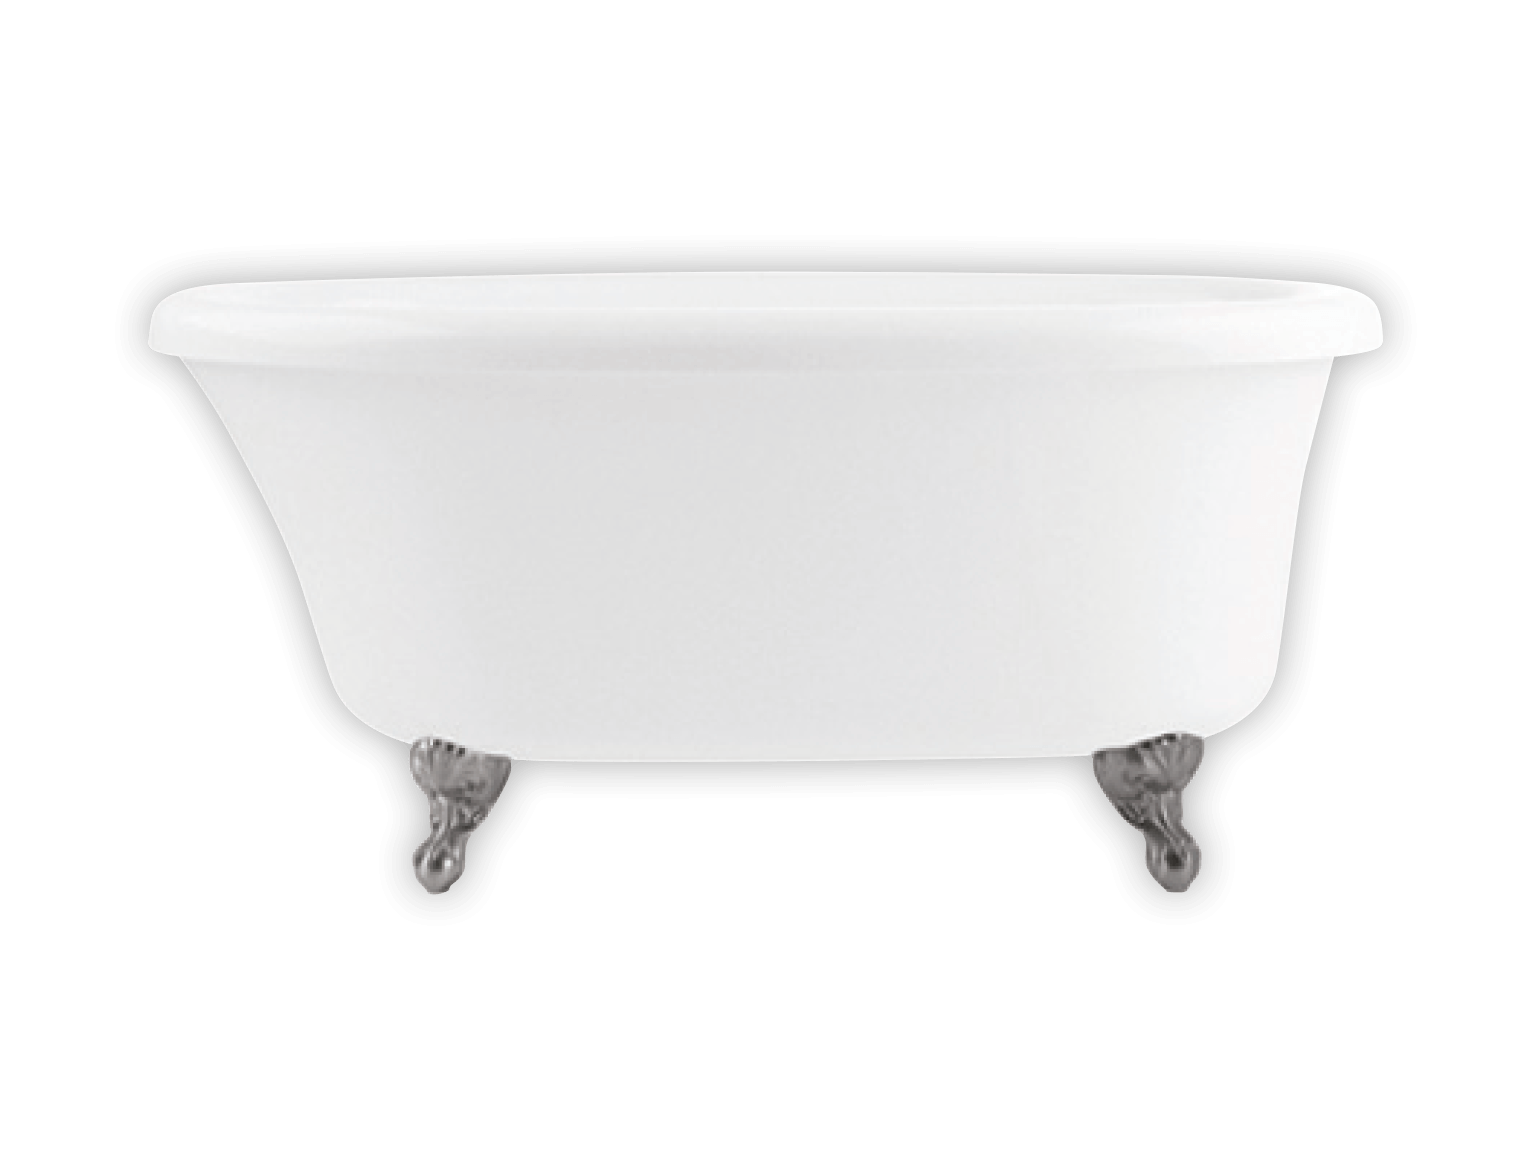 Bainultra Cella 6036 clawfoot air jet bathtub for your modern bathroom